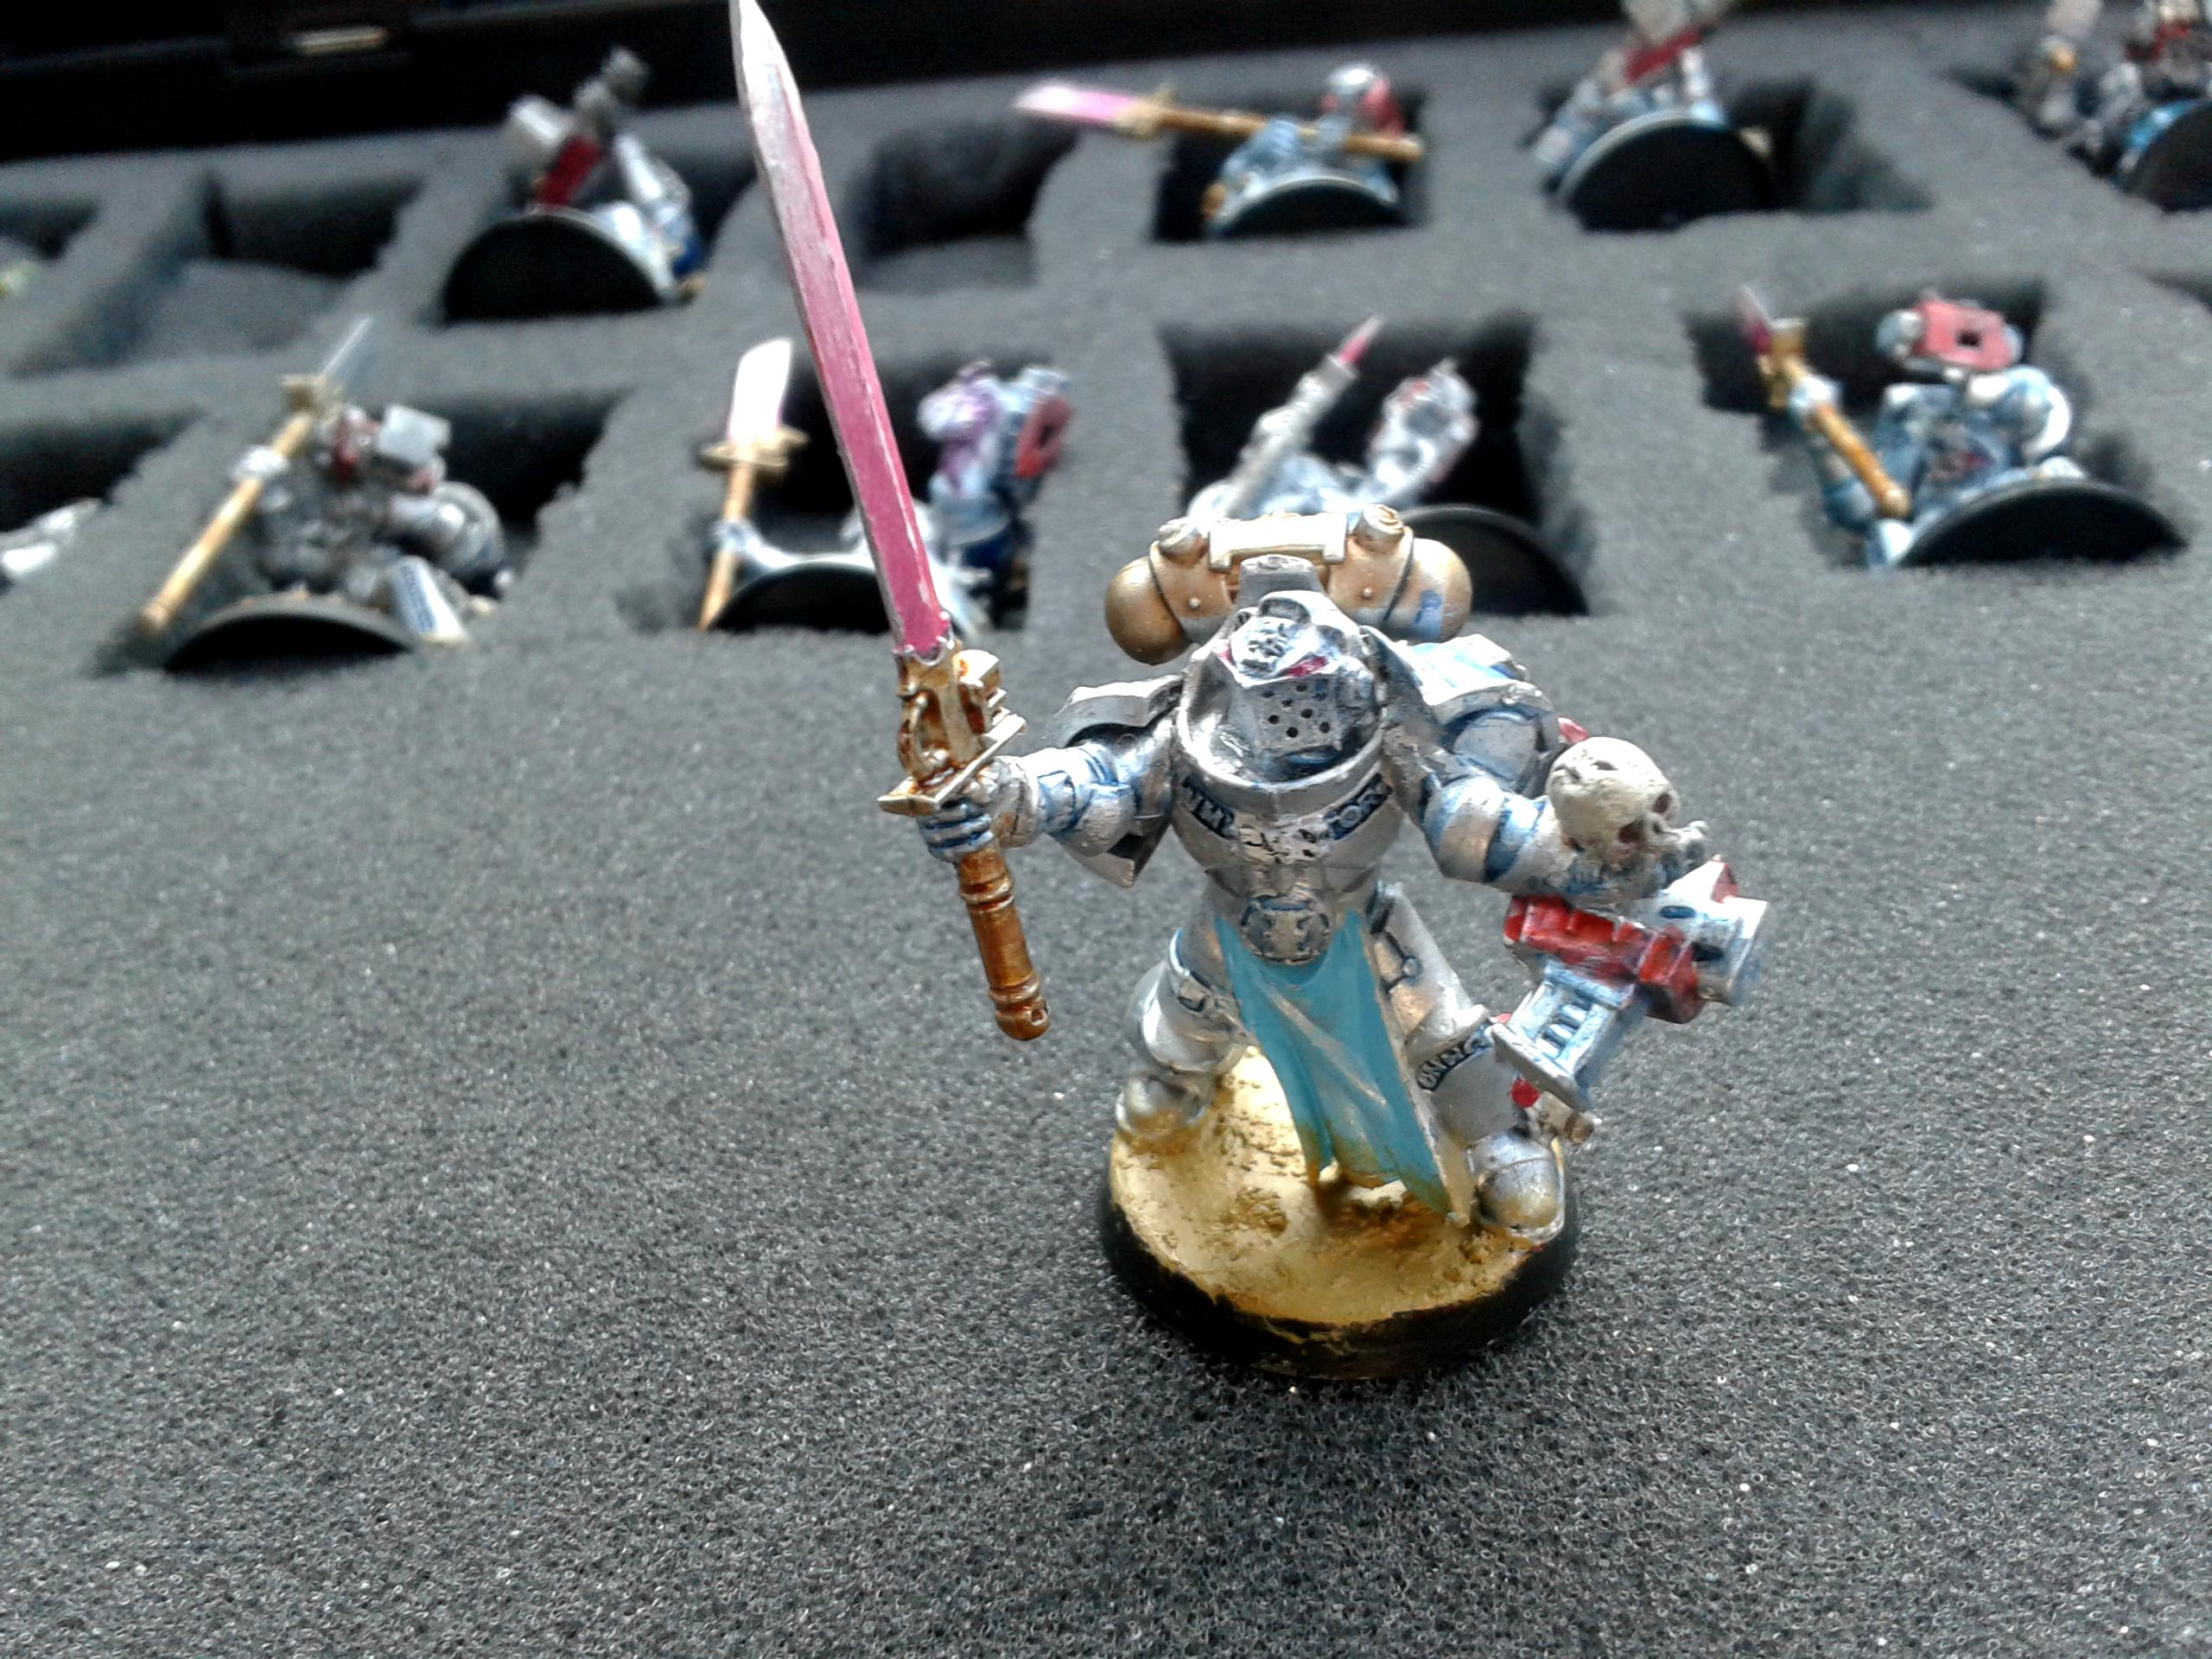 Gk, Knight of the flame for gkp